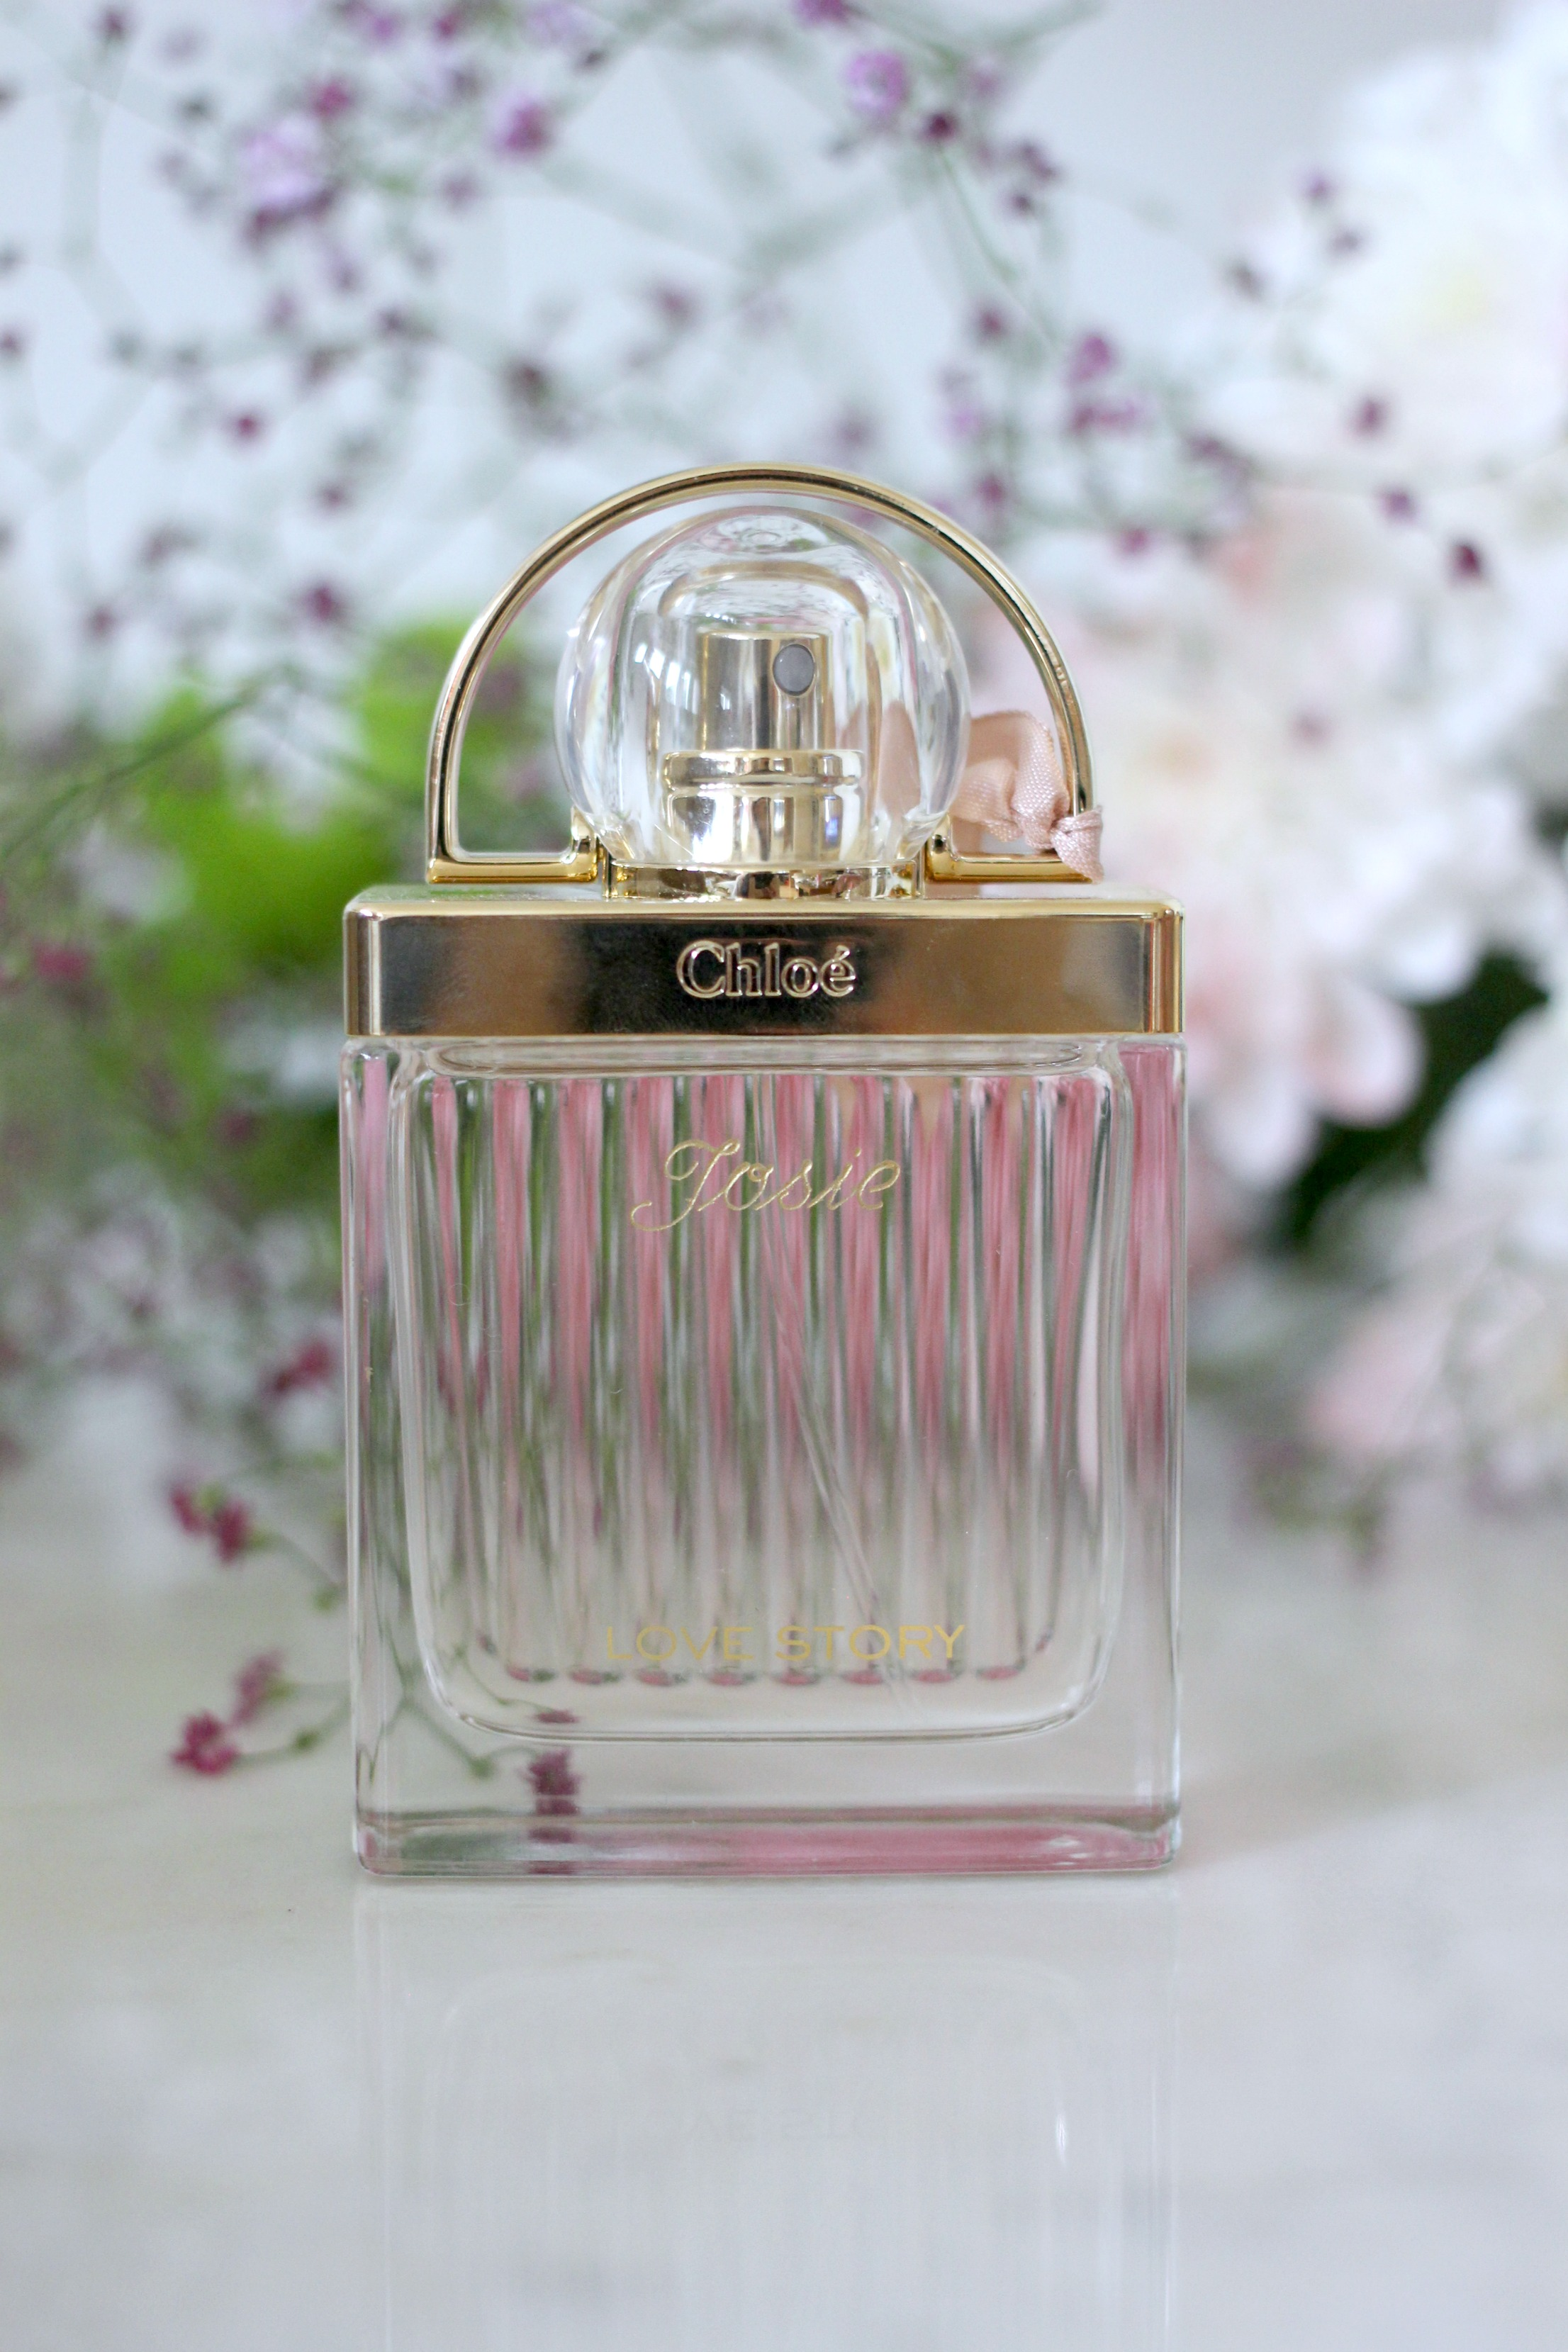 Finding your Fragrance Soulmate - Fashion Mumblr Perfume Chloe